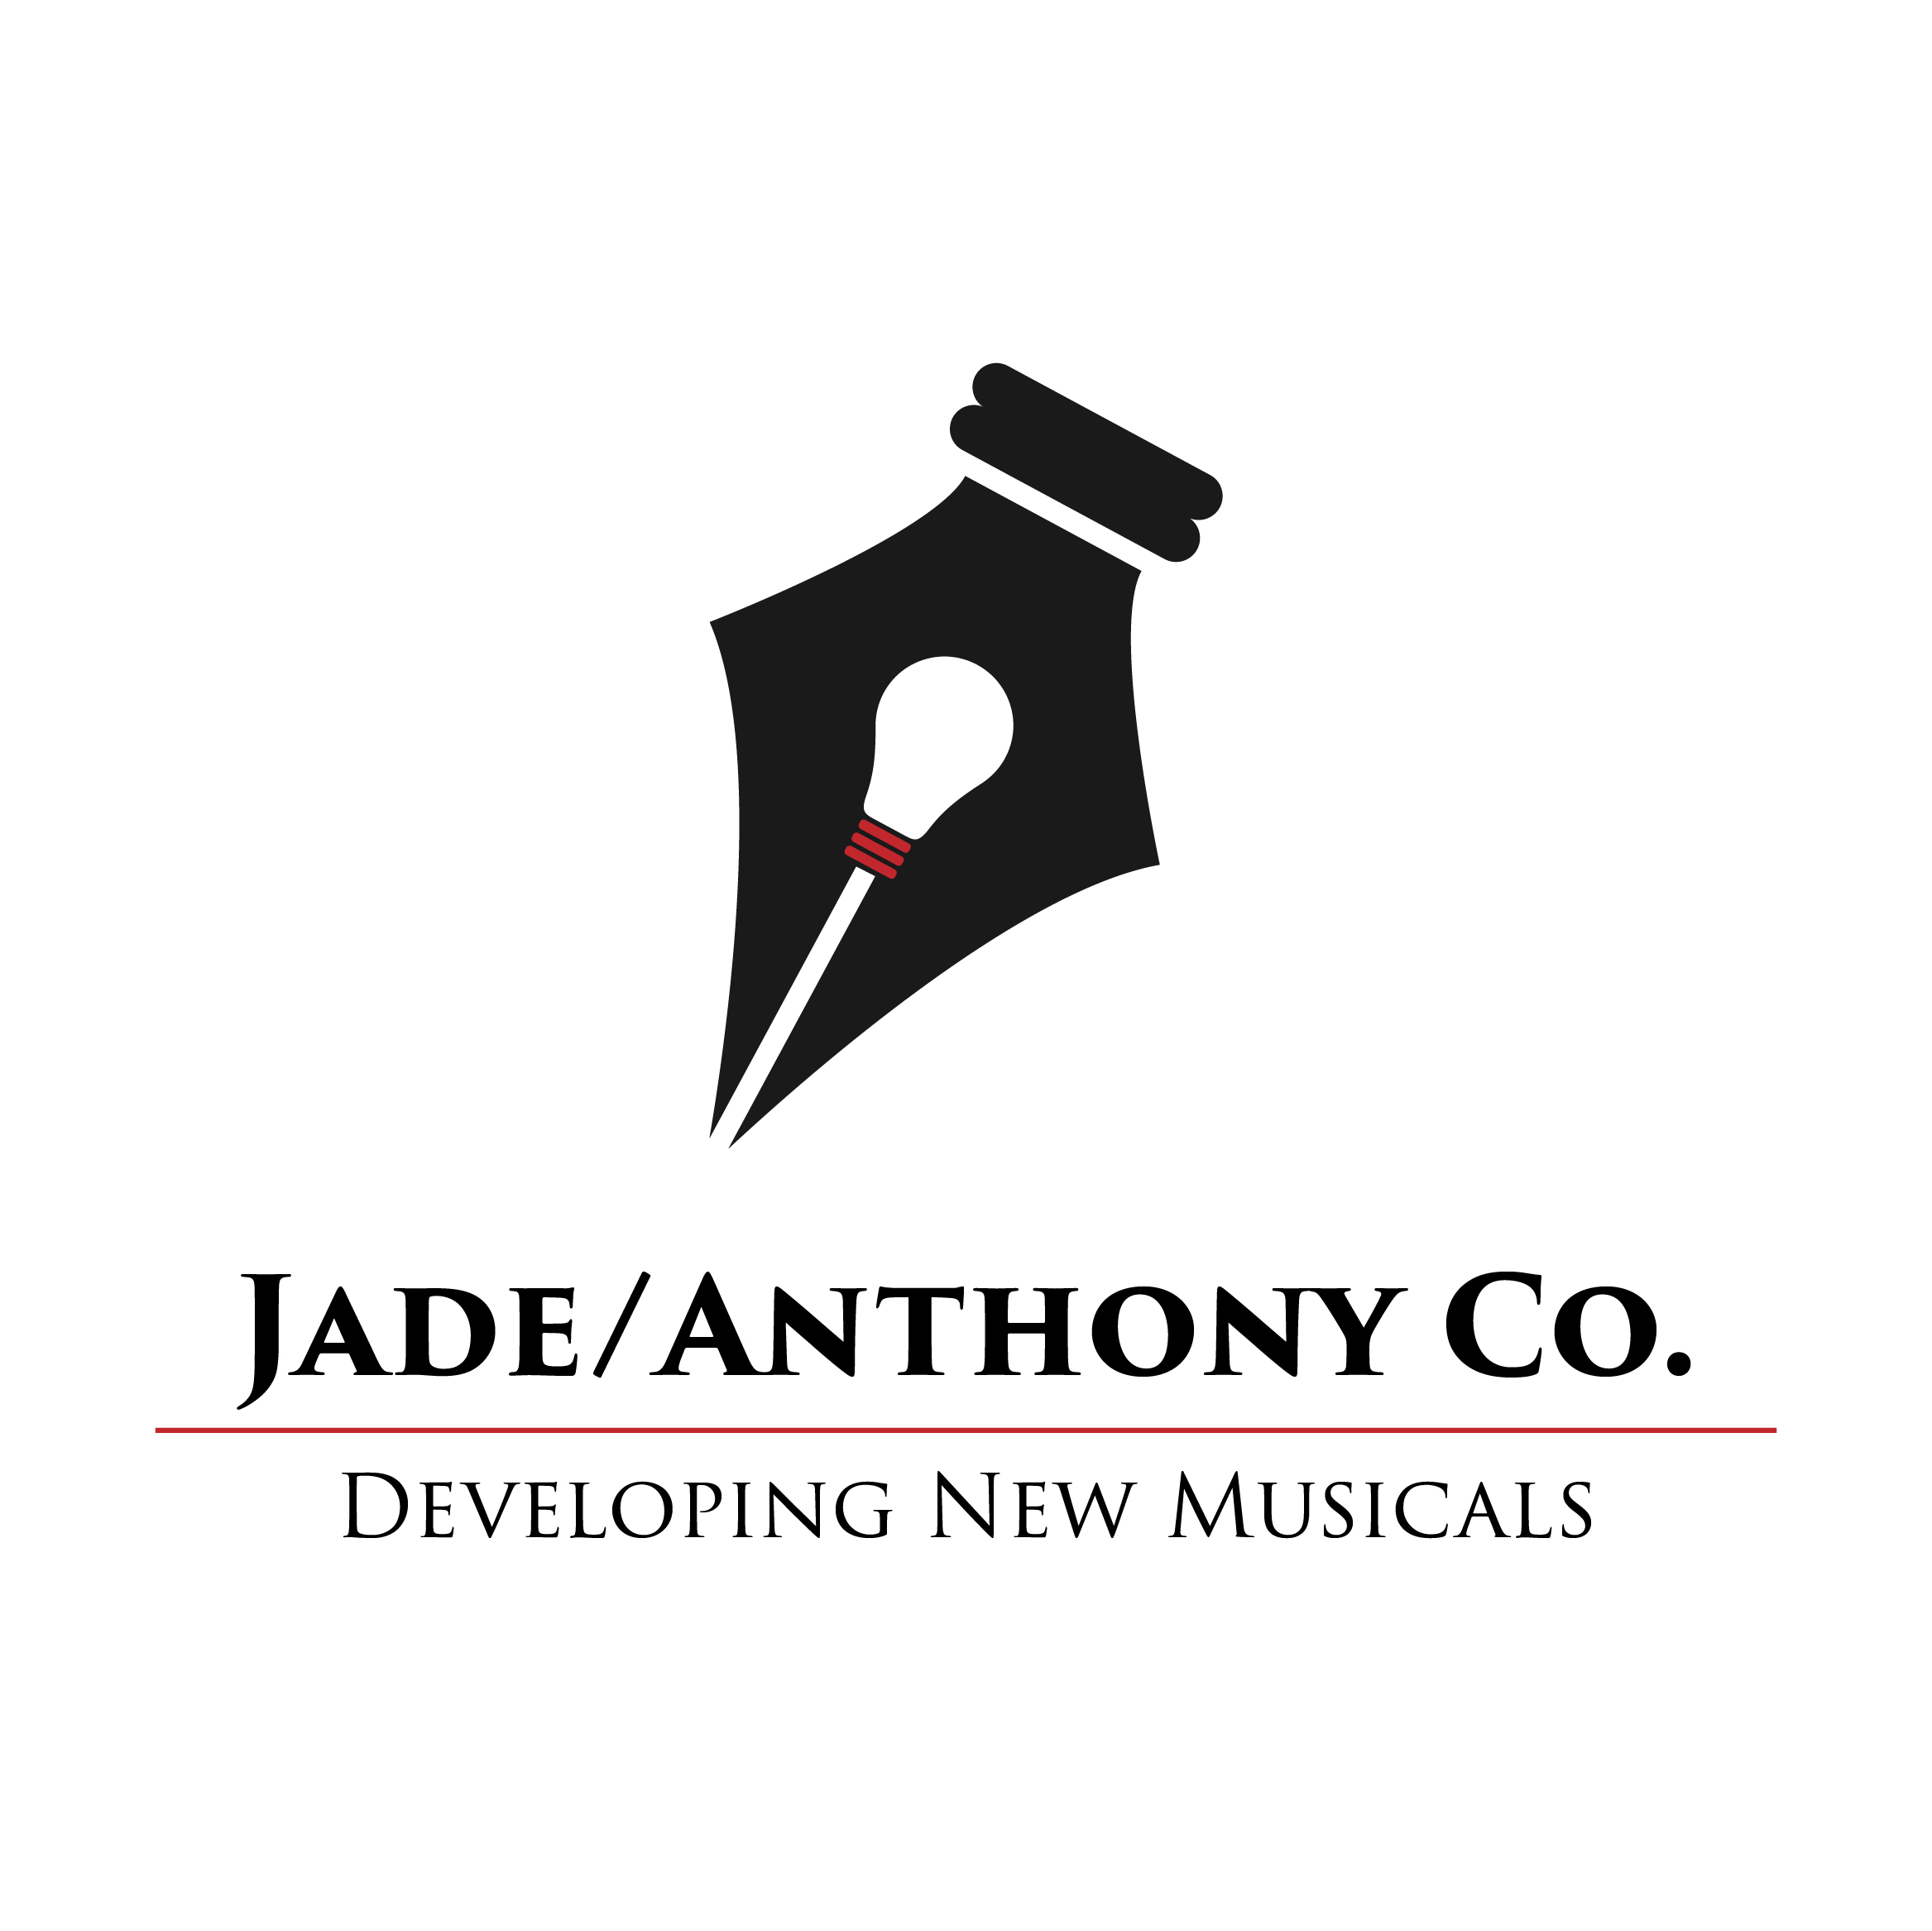 The Jade/Anthony Company (License Management)